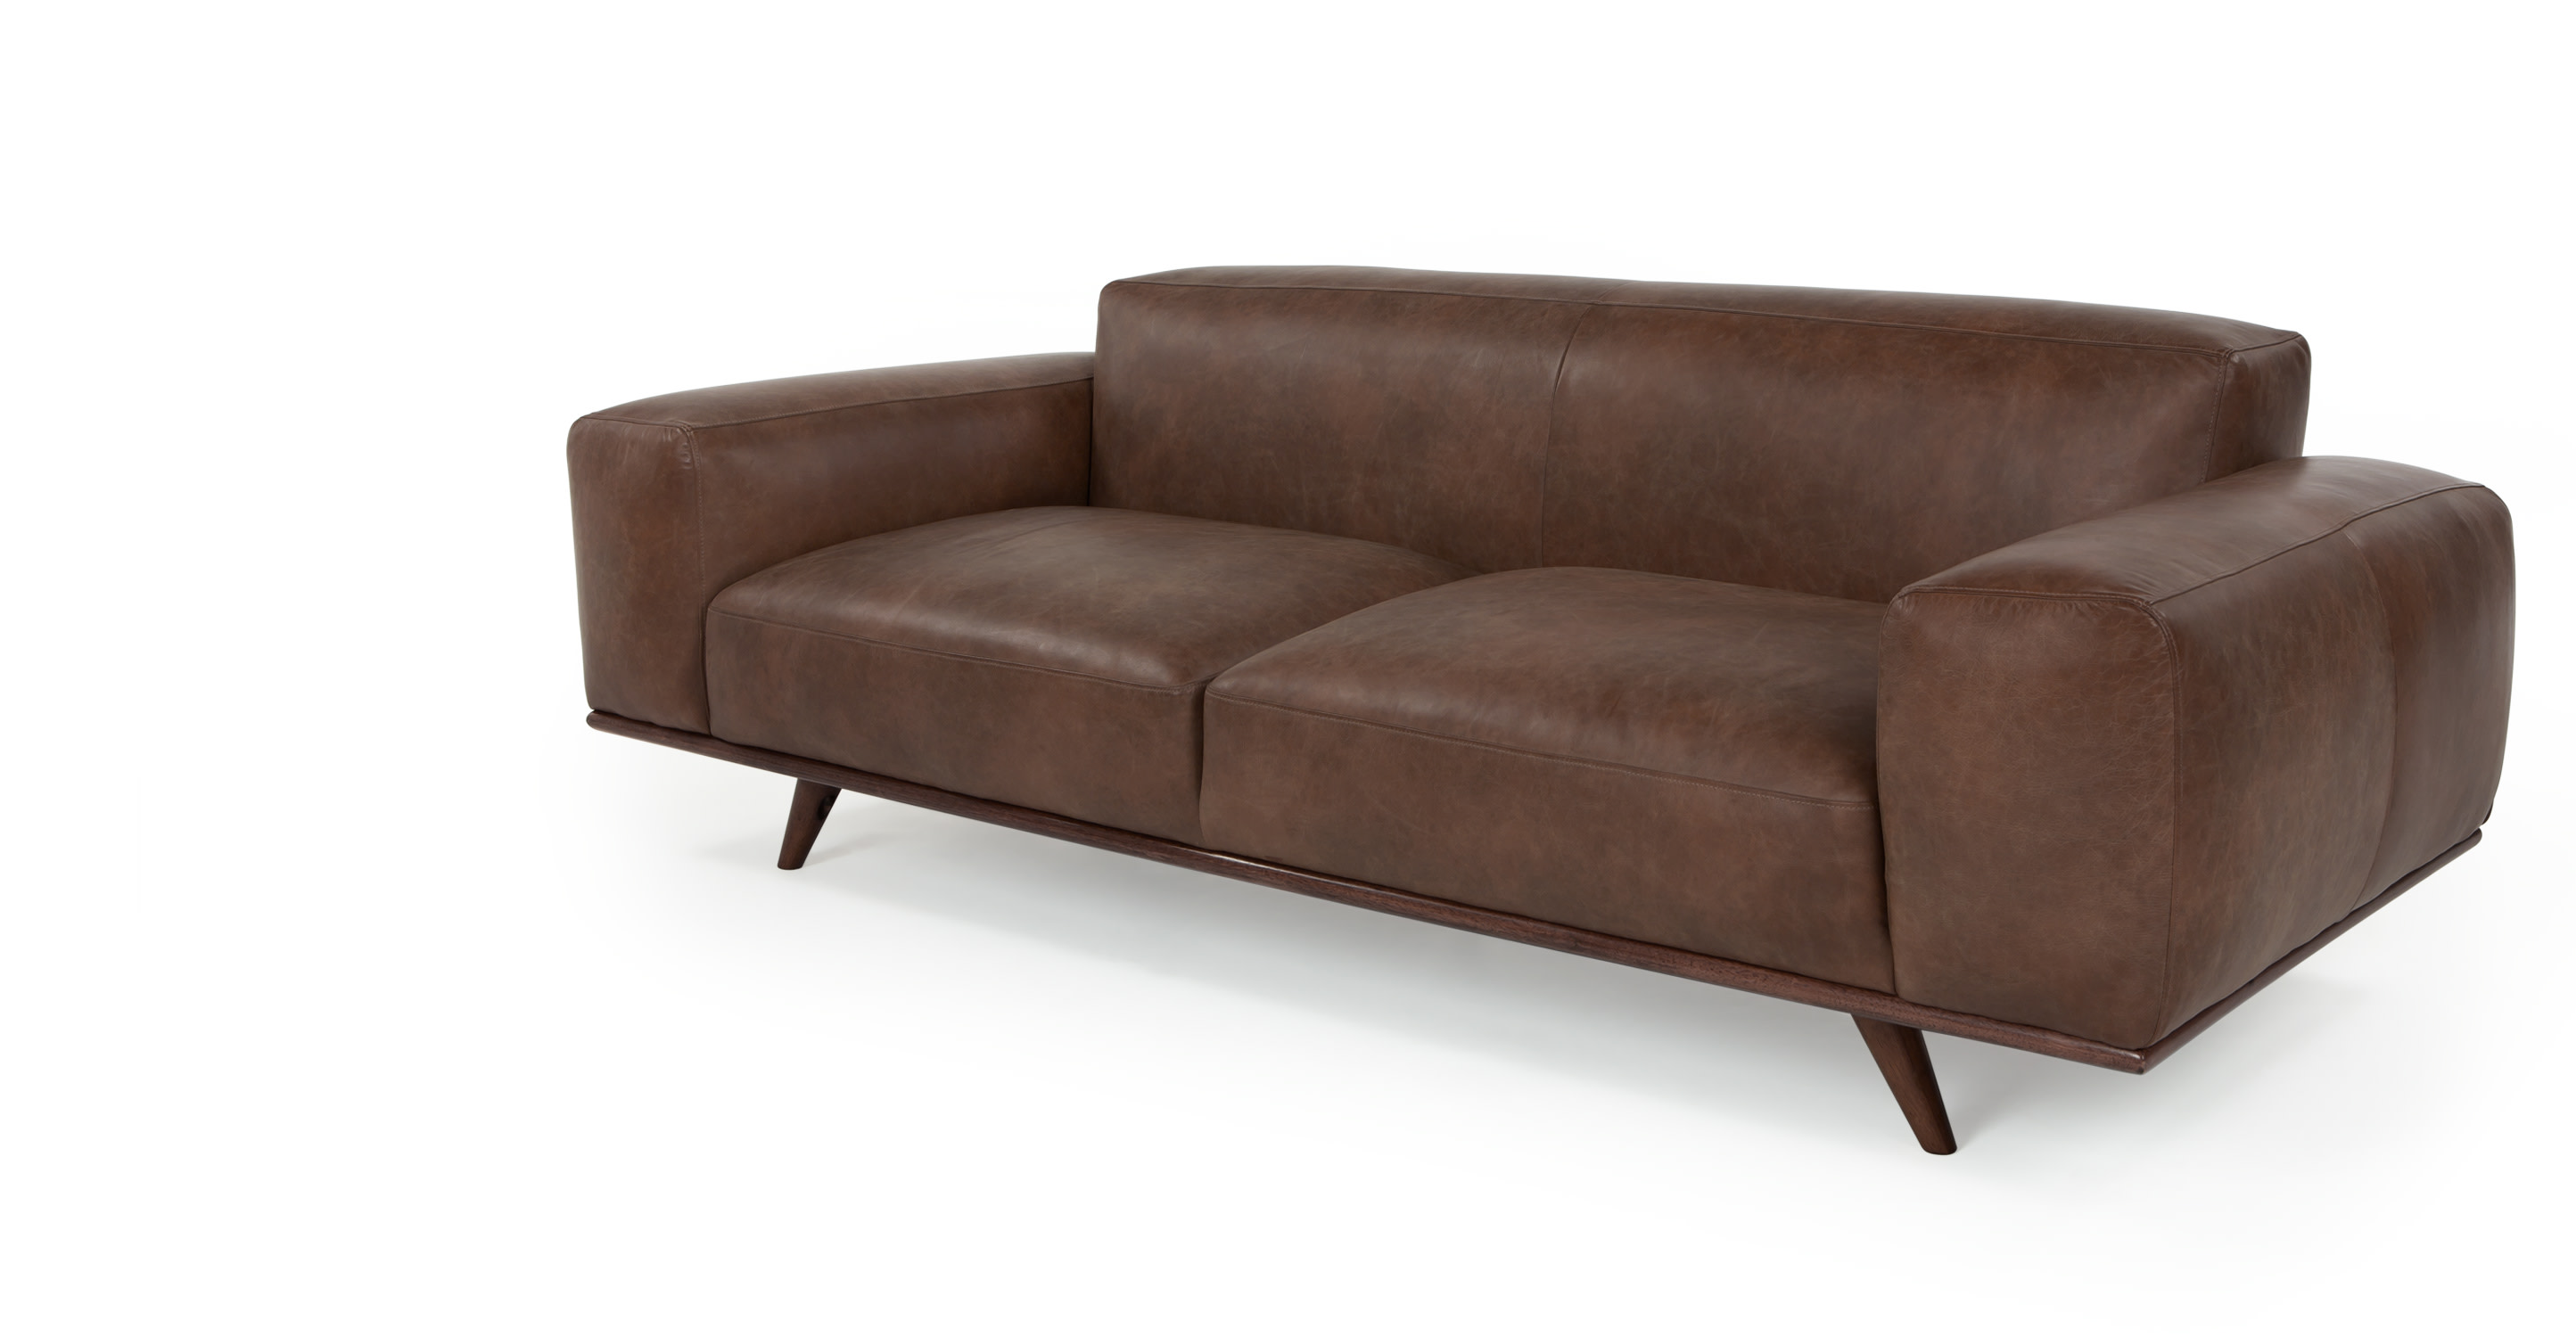 Otto 3 Seater Sofa In Tan Premium Leather